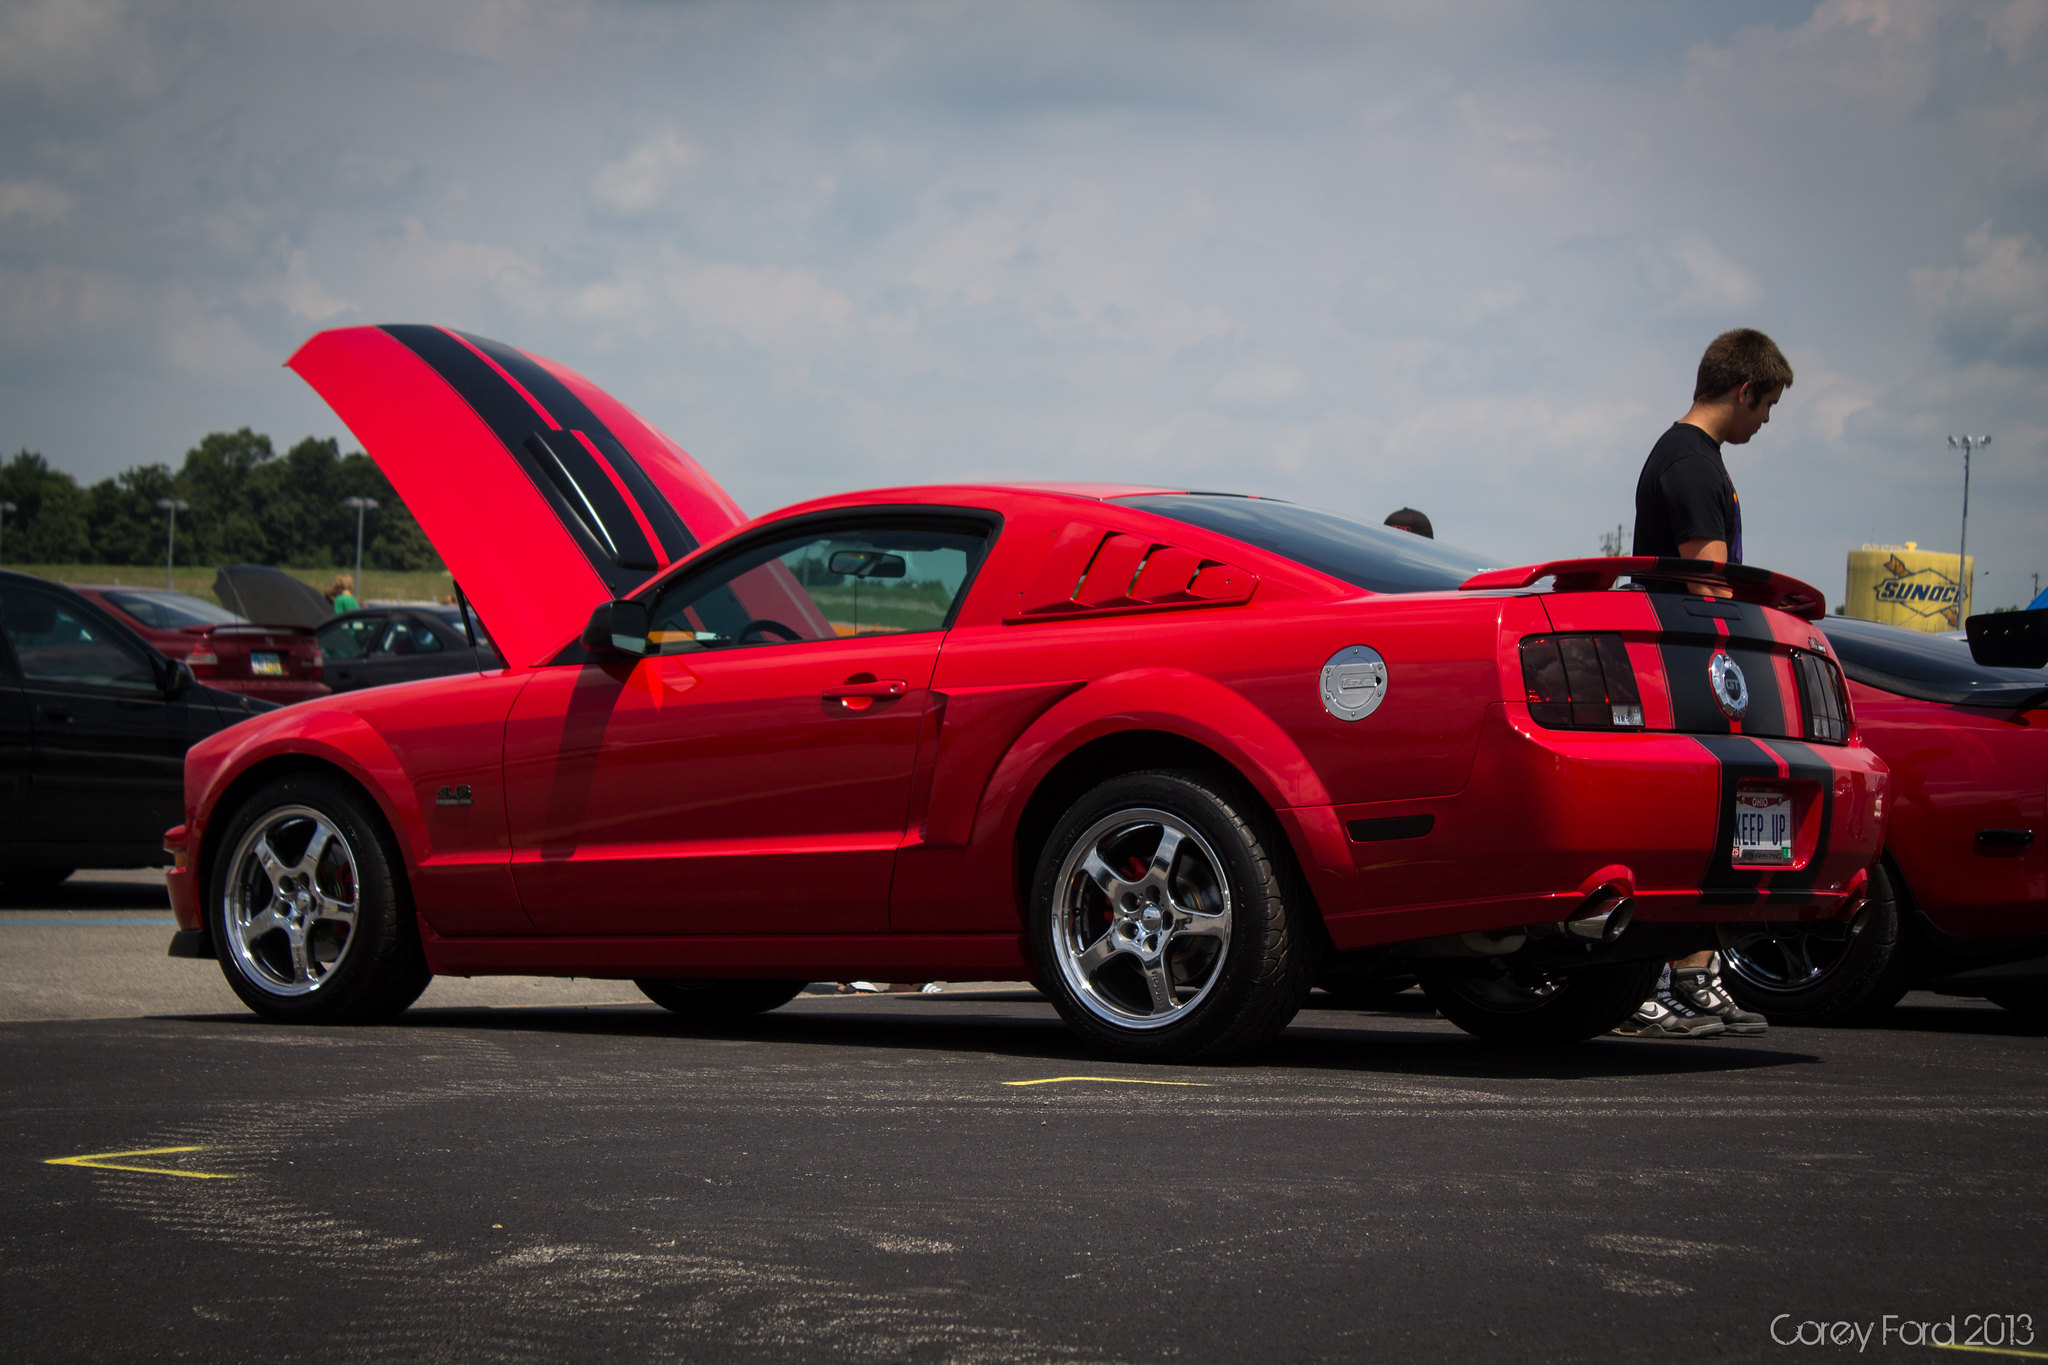 Shift S 2008 Mustang Gt Build Thread Forums At Modded